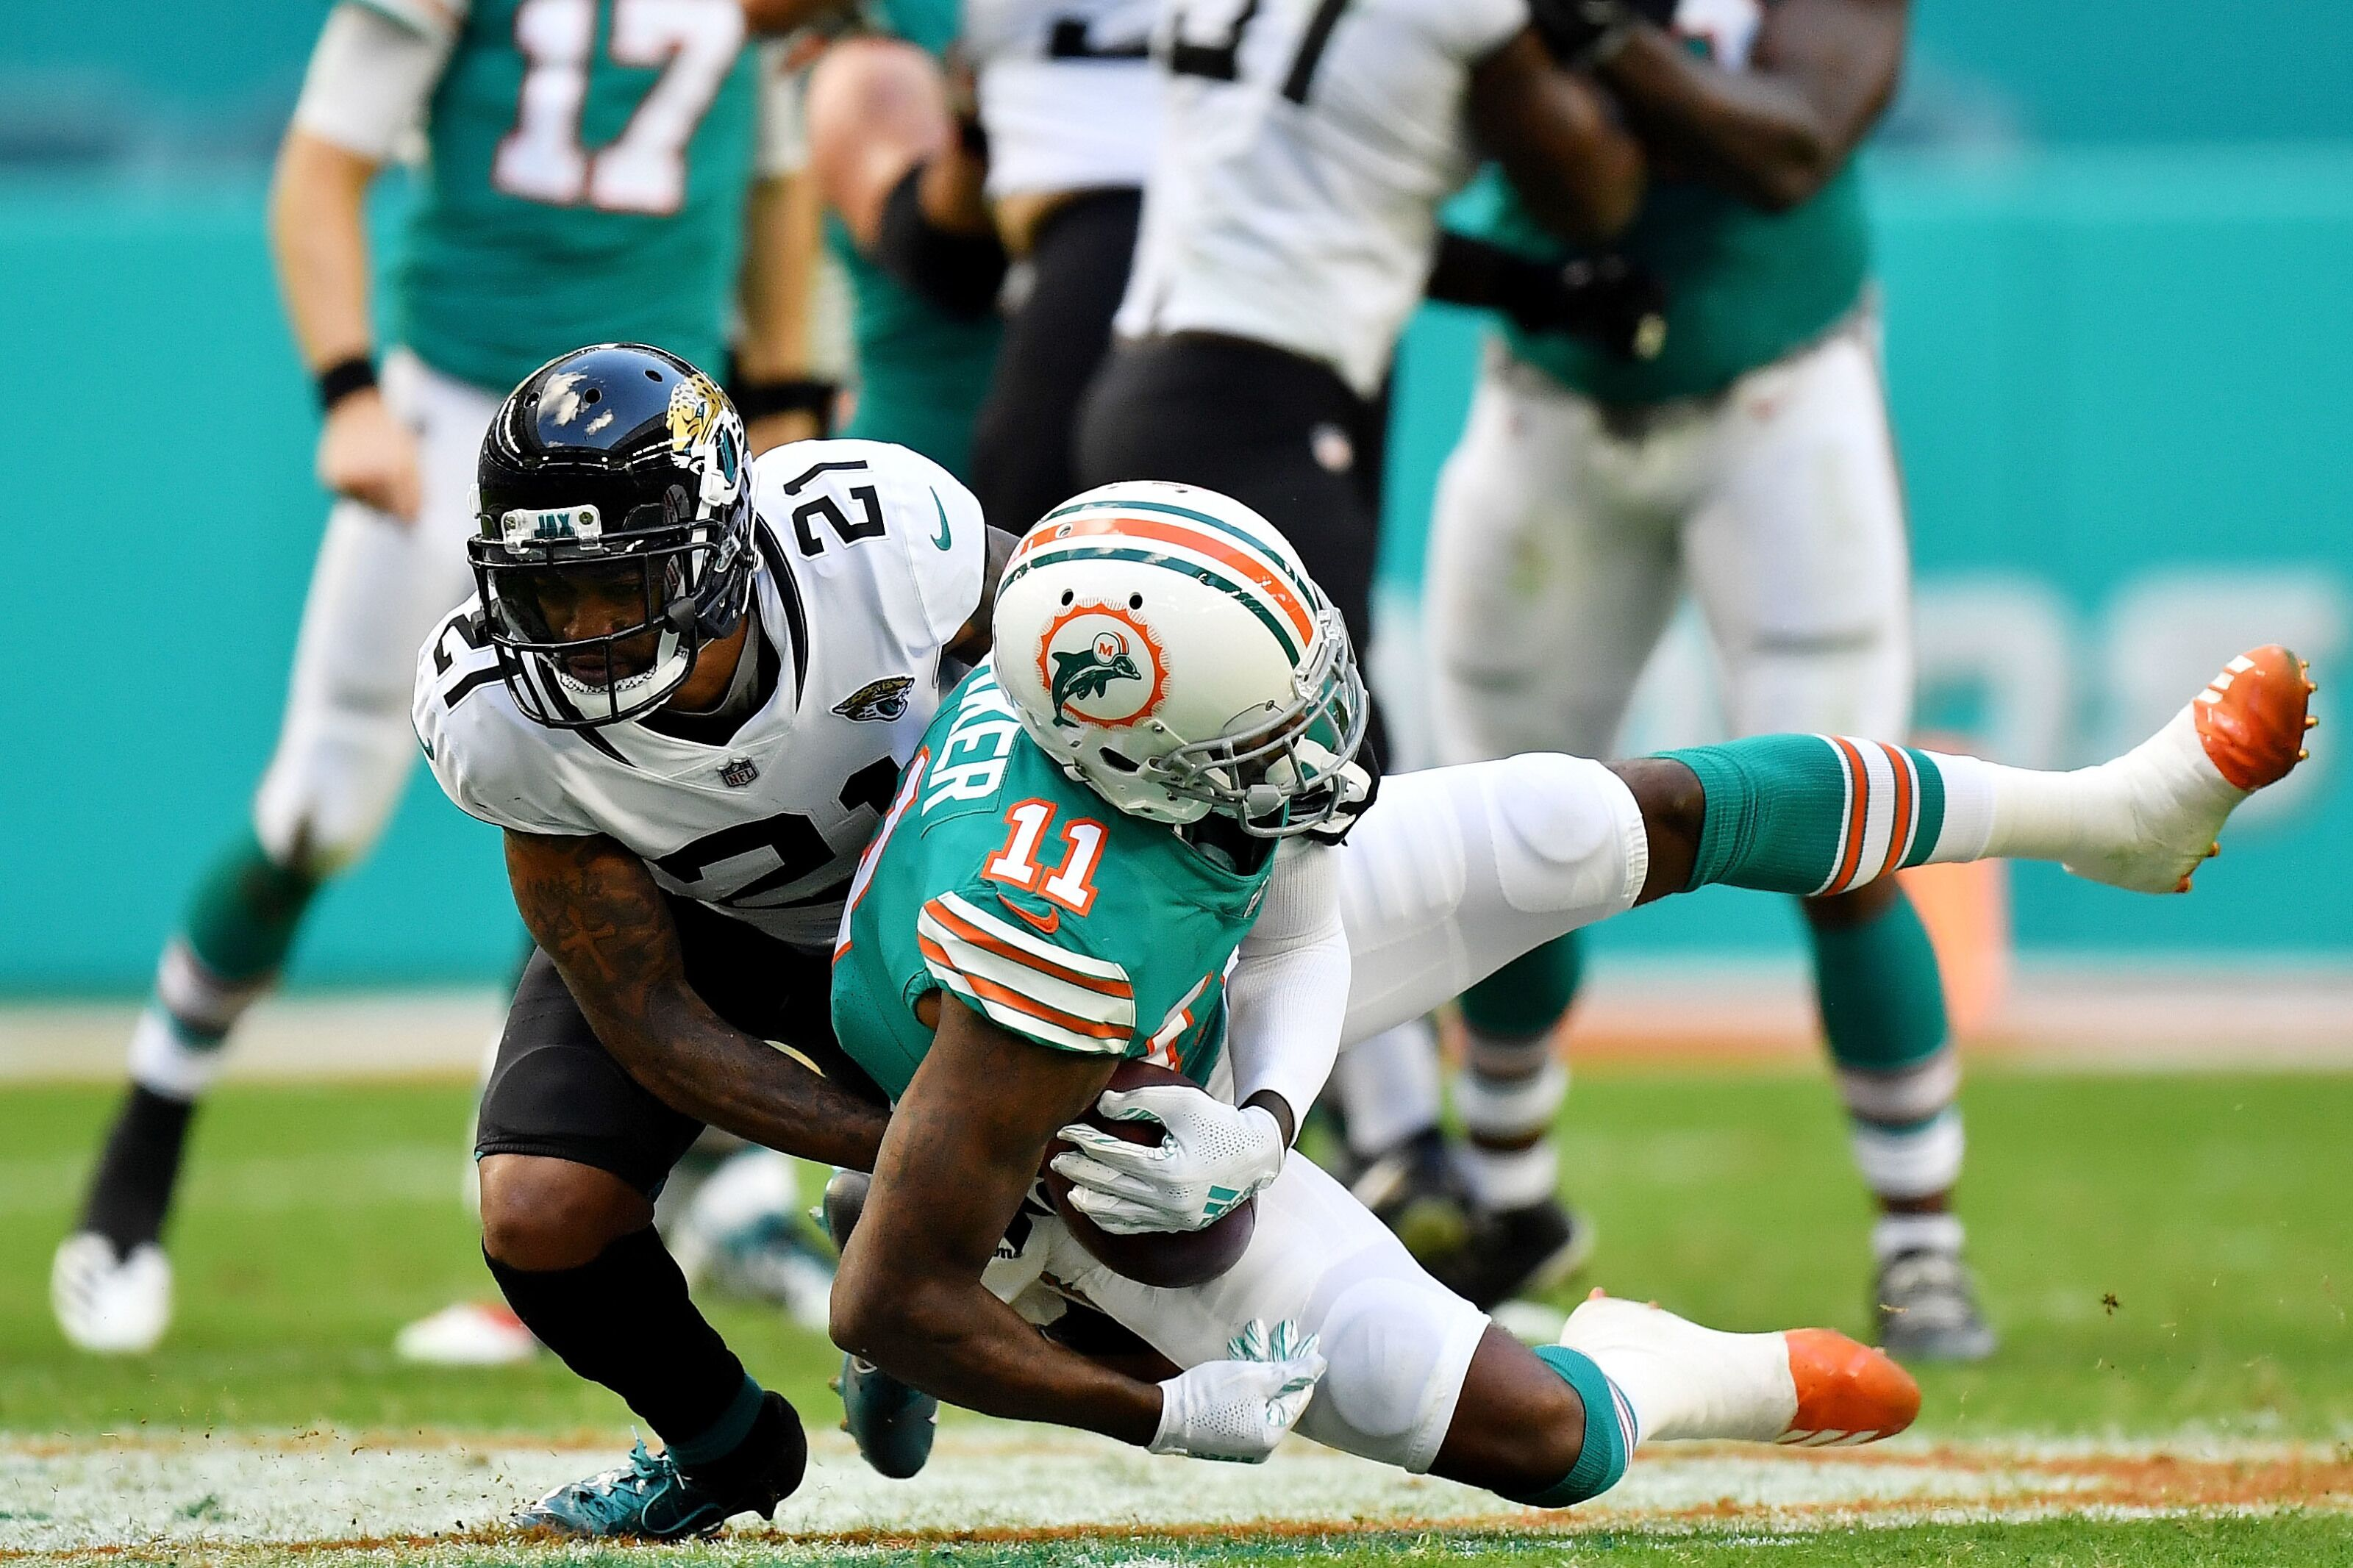 Injuries plague the Jaguars ahead of Sunday's game at Houston